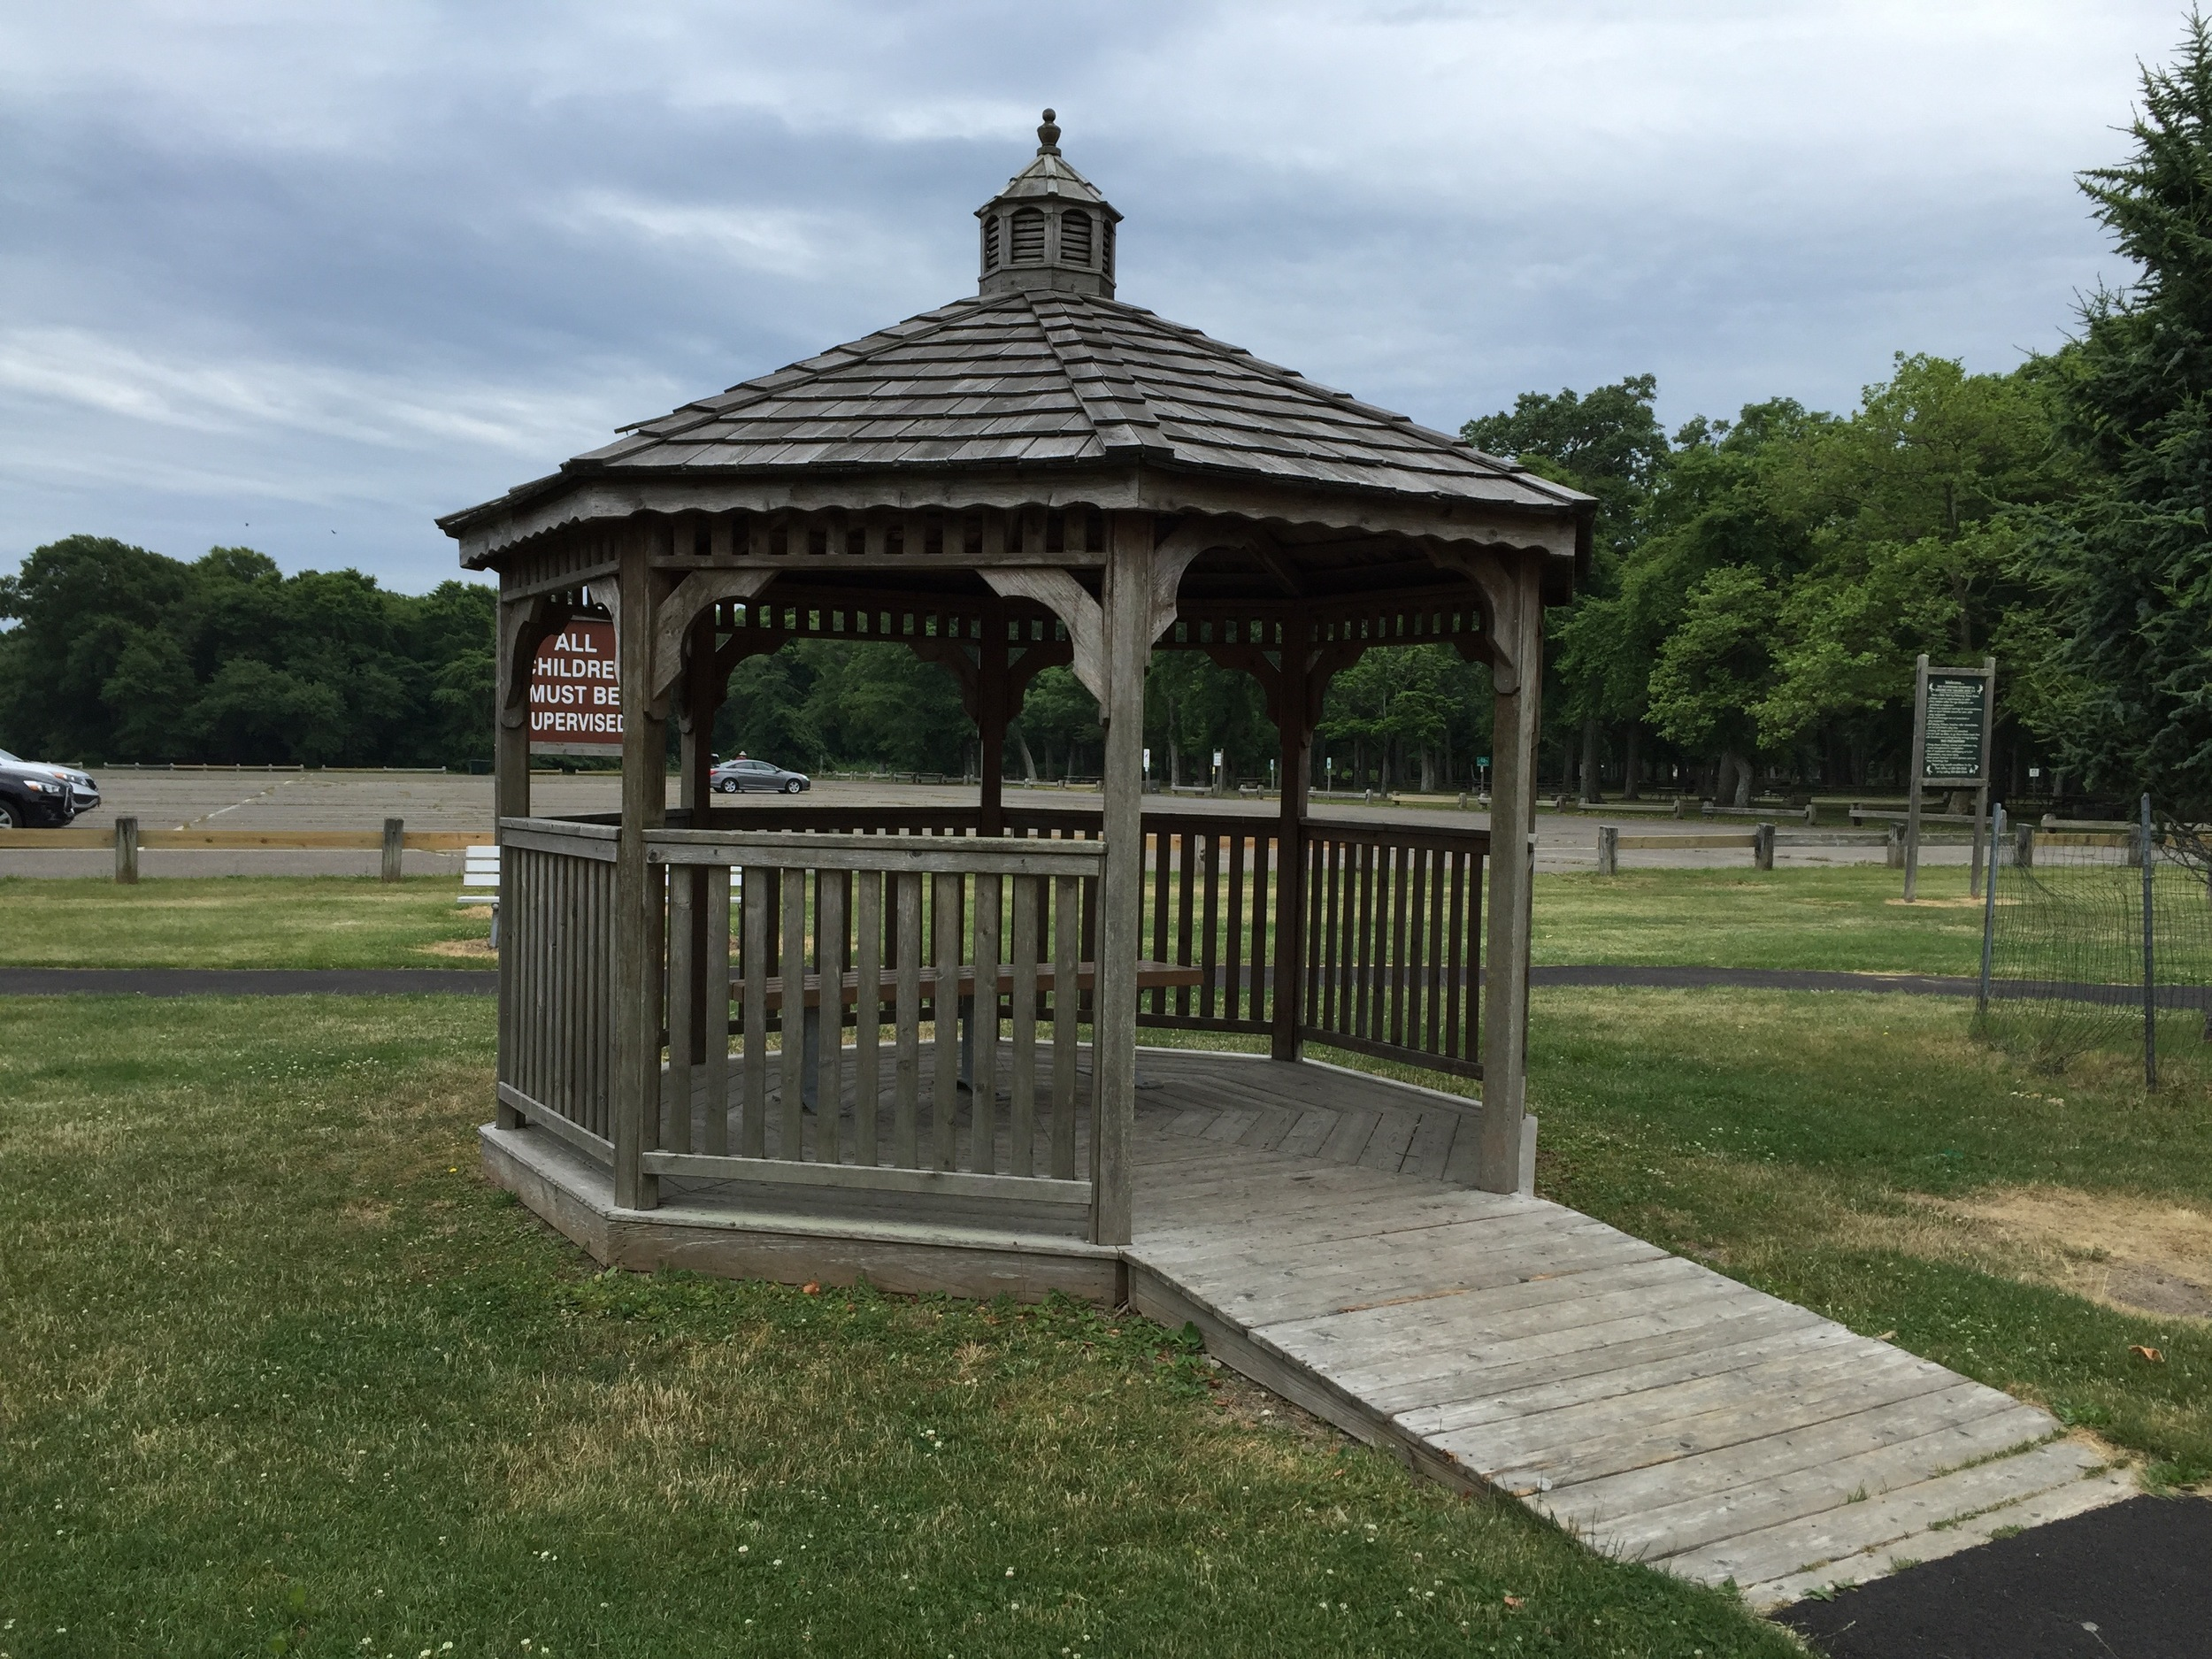 Field 1 Gazebo at Heckscher State Park